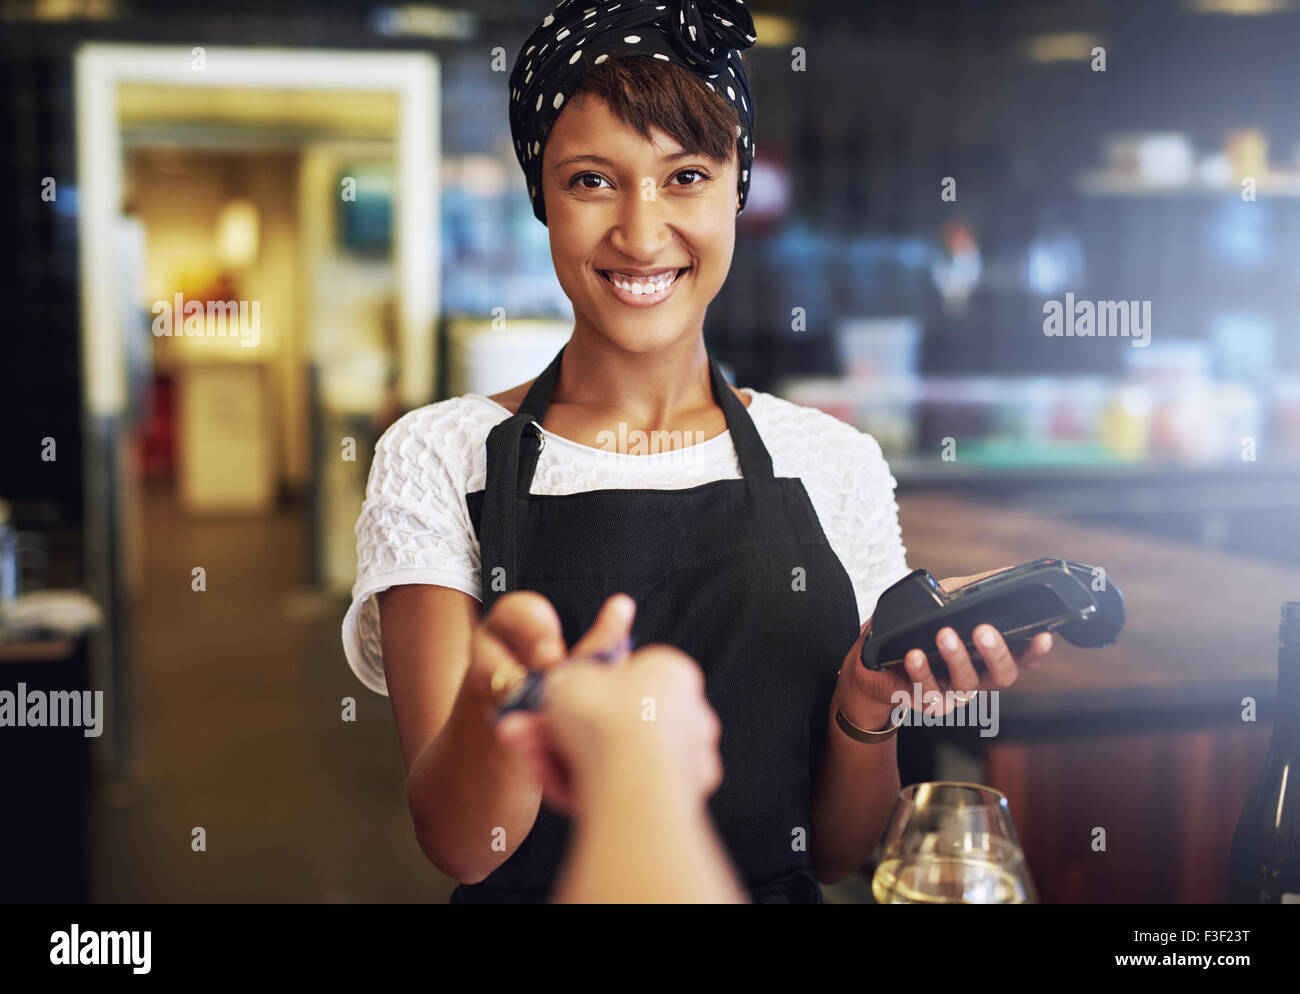 Smiling waitress or small business owner taking a credit card from a customer to process through the banking machine - Stock Image